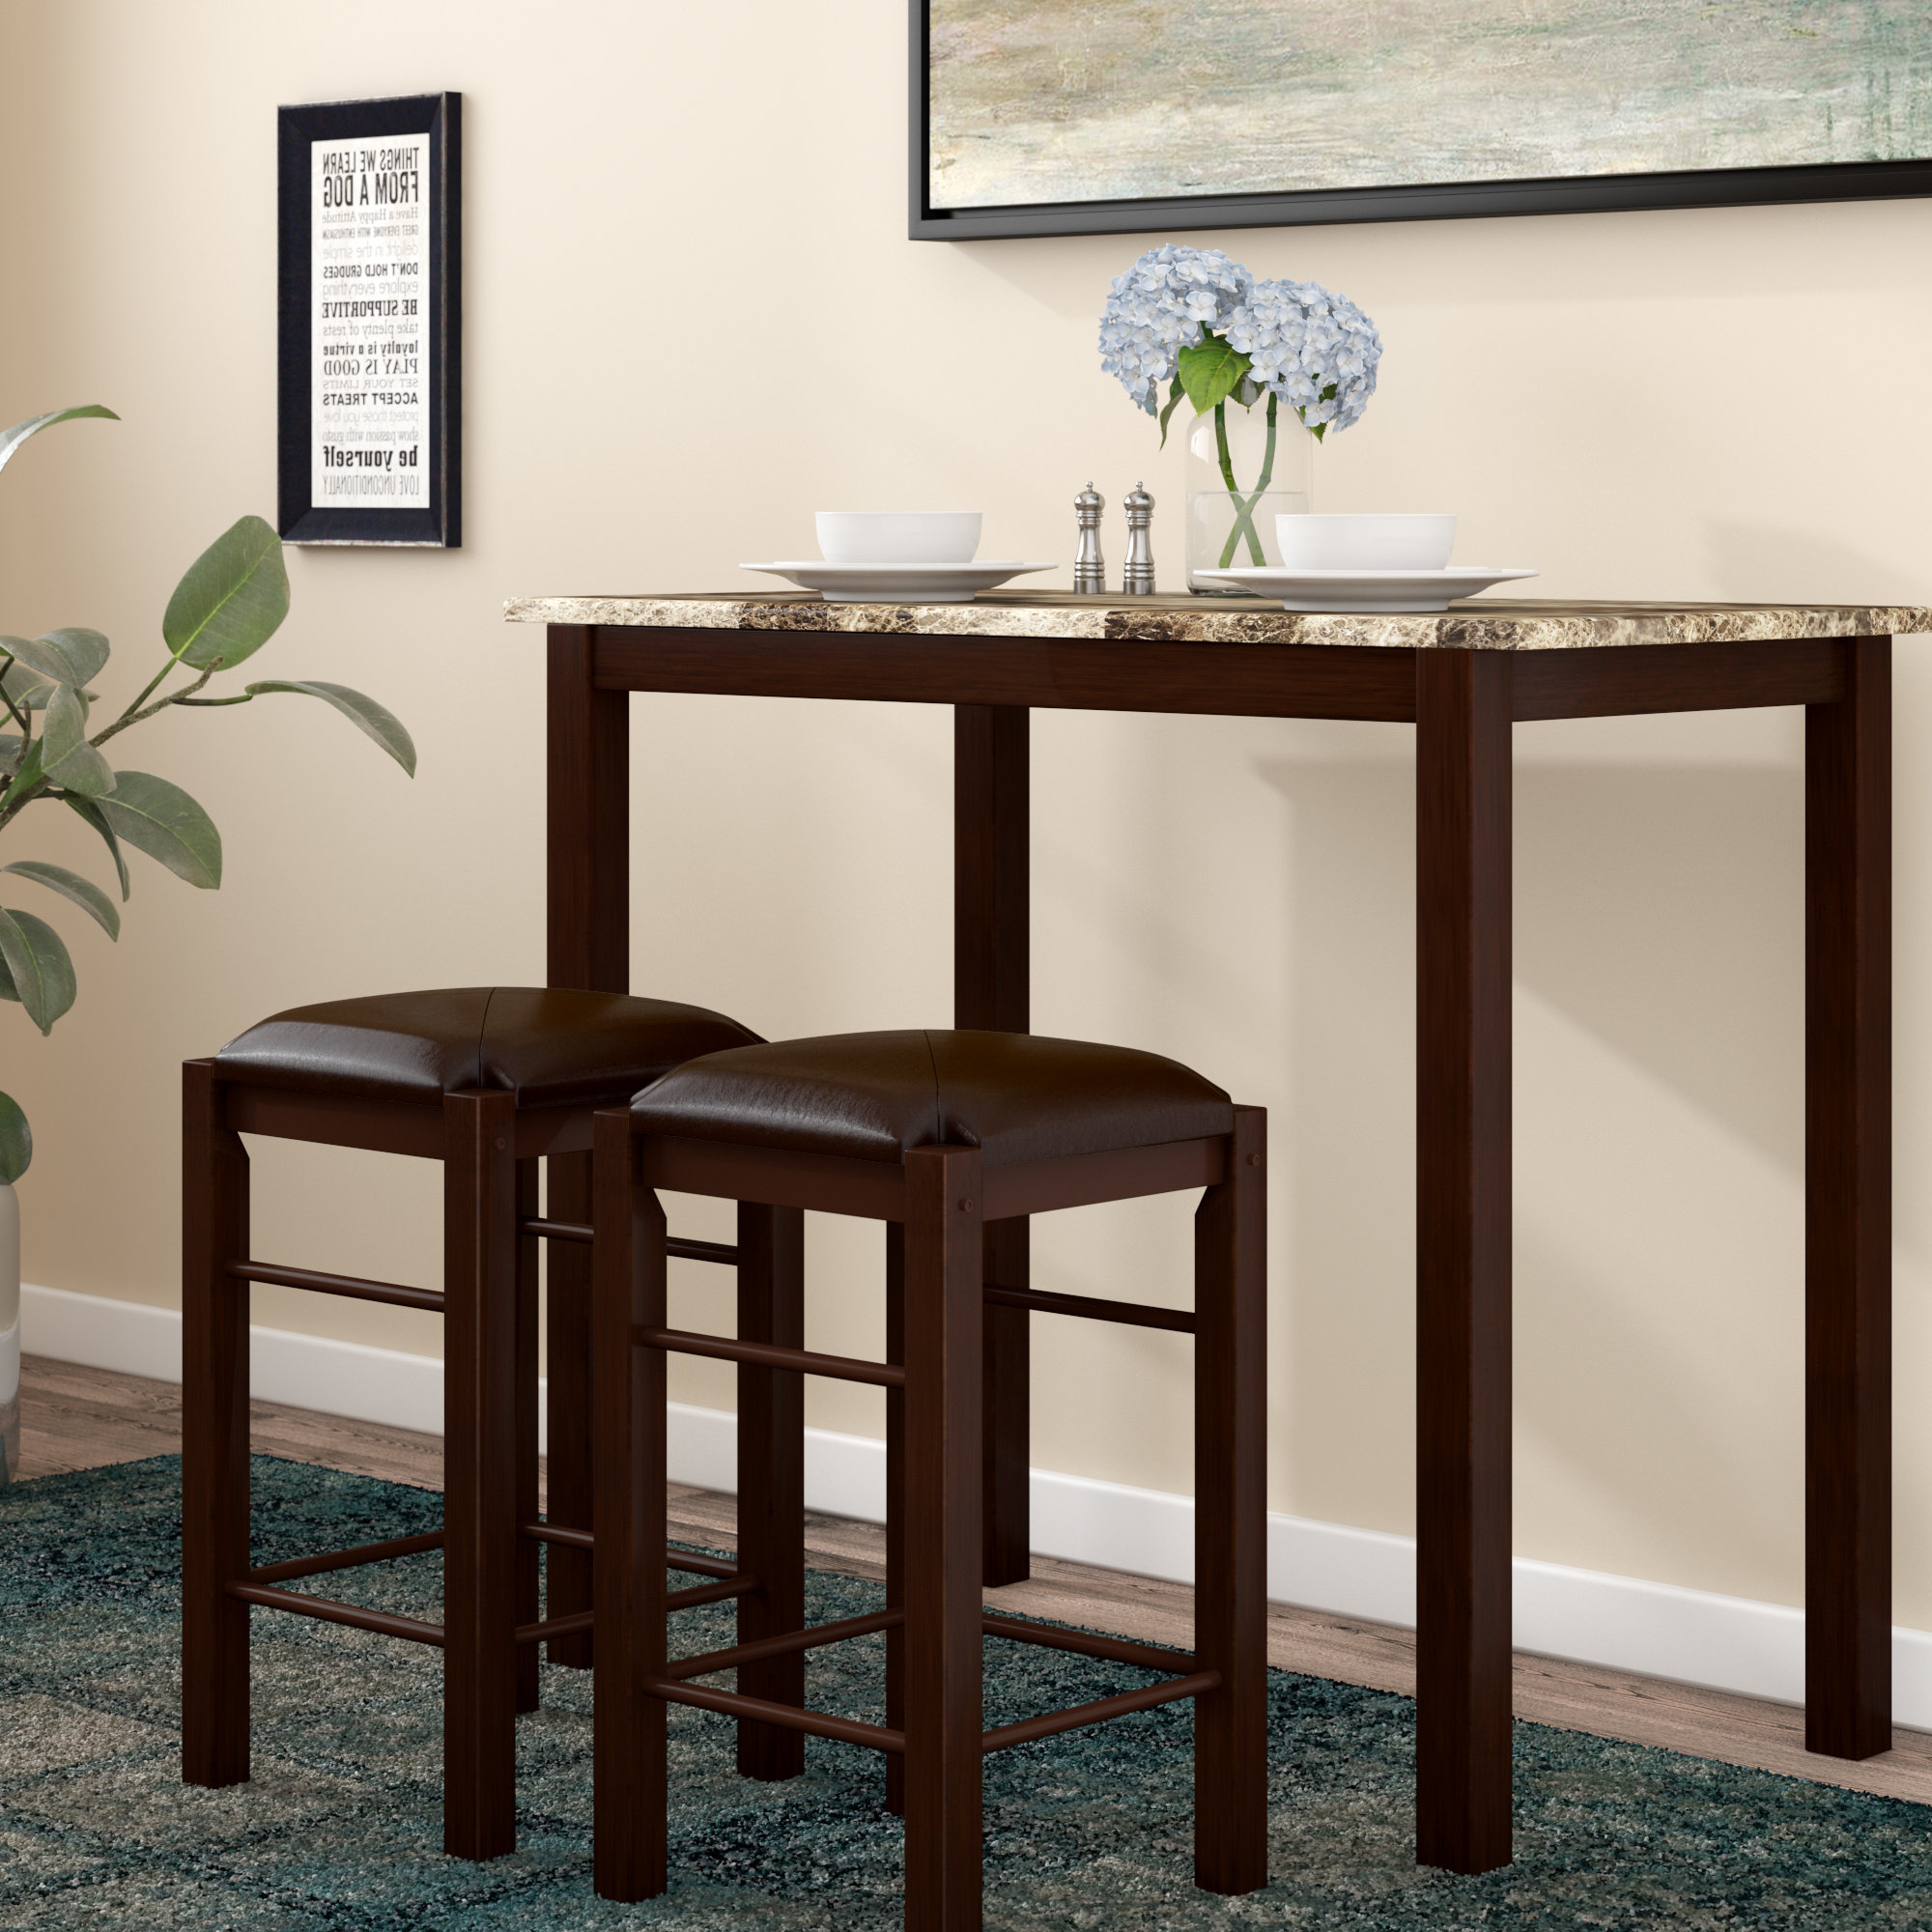 2019 Tenney 3 Piece Counter Height Dining Sets Throughout Winston Porter Penelope 3 Piece Counter Height Wood Dining Set (View 4 of 25)